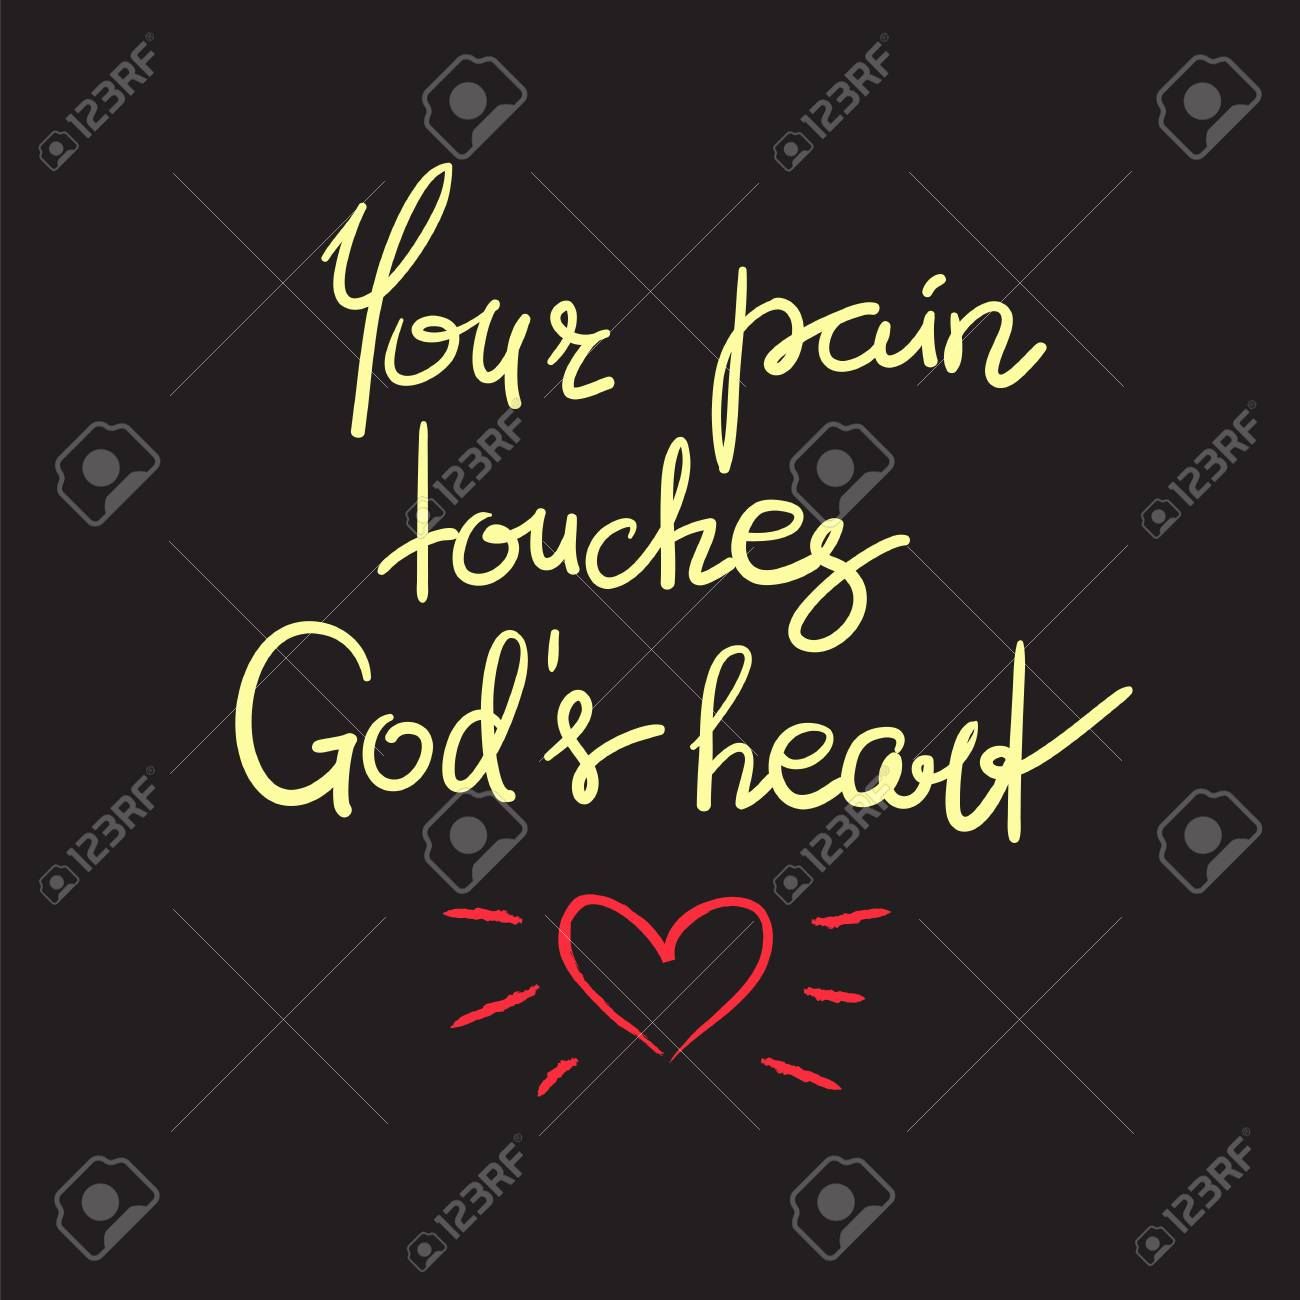 Your pain touches Gods heart - motivational quote lettering,